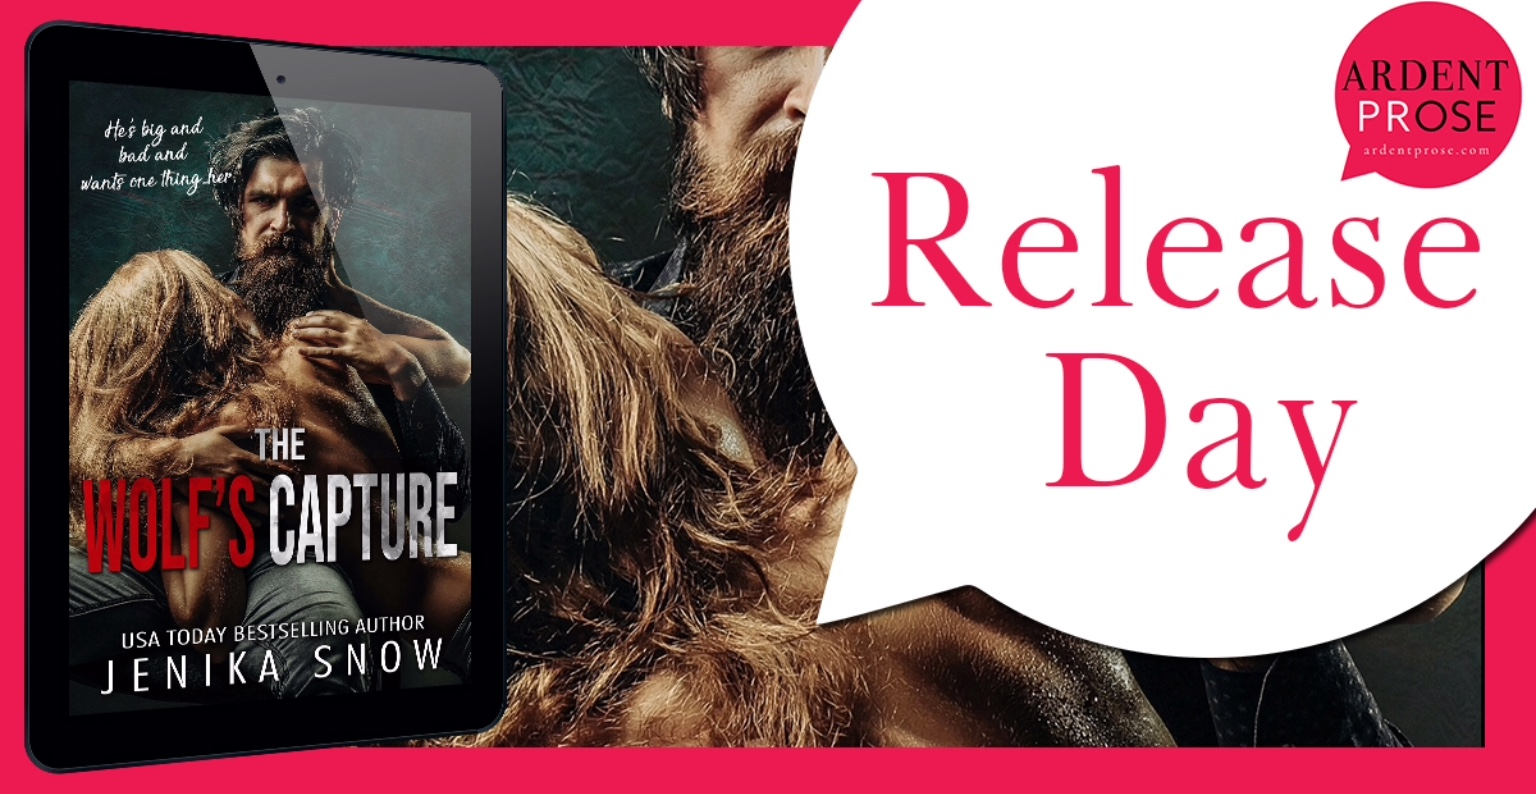 THE WOLF'S CAPTURE by Jenika Snow @ArdentPRose #NowAvailable #Review #TheUnratedBookshelf #FairytaleRetelling